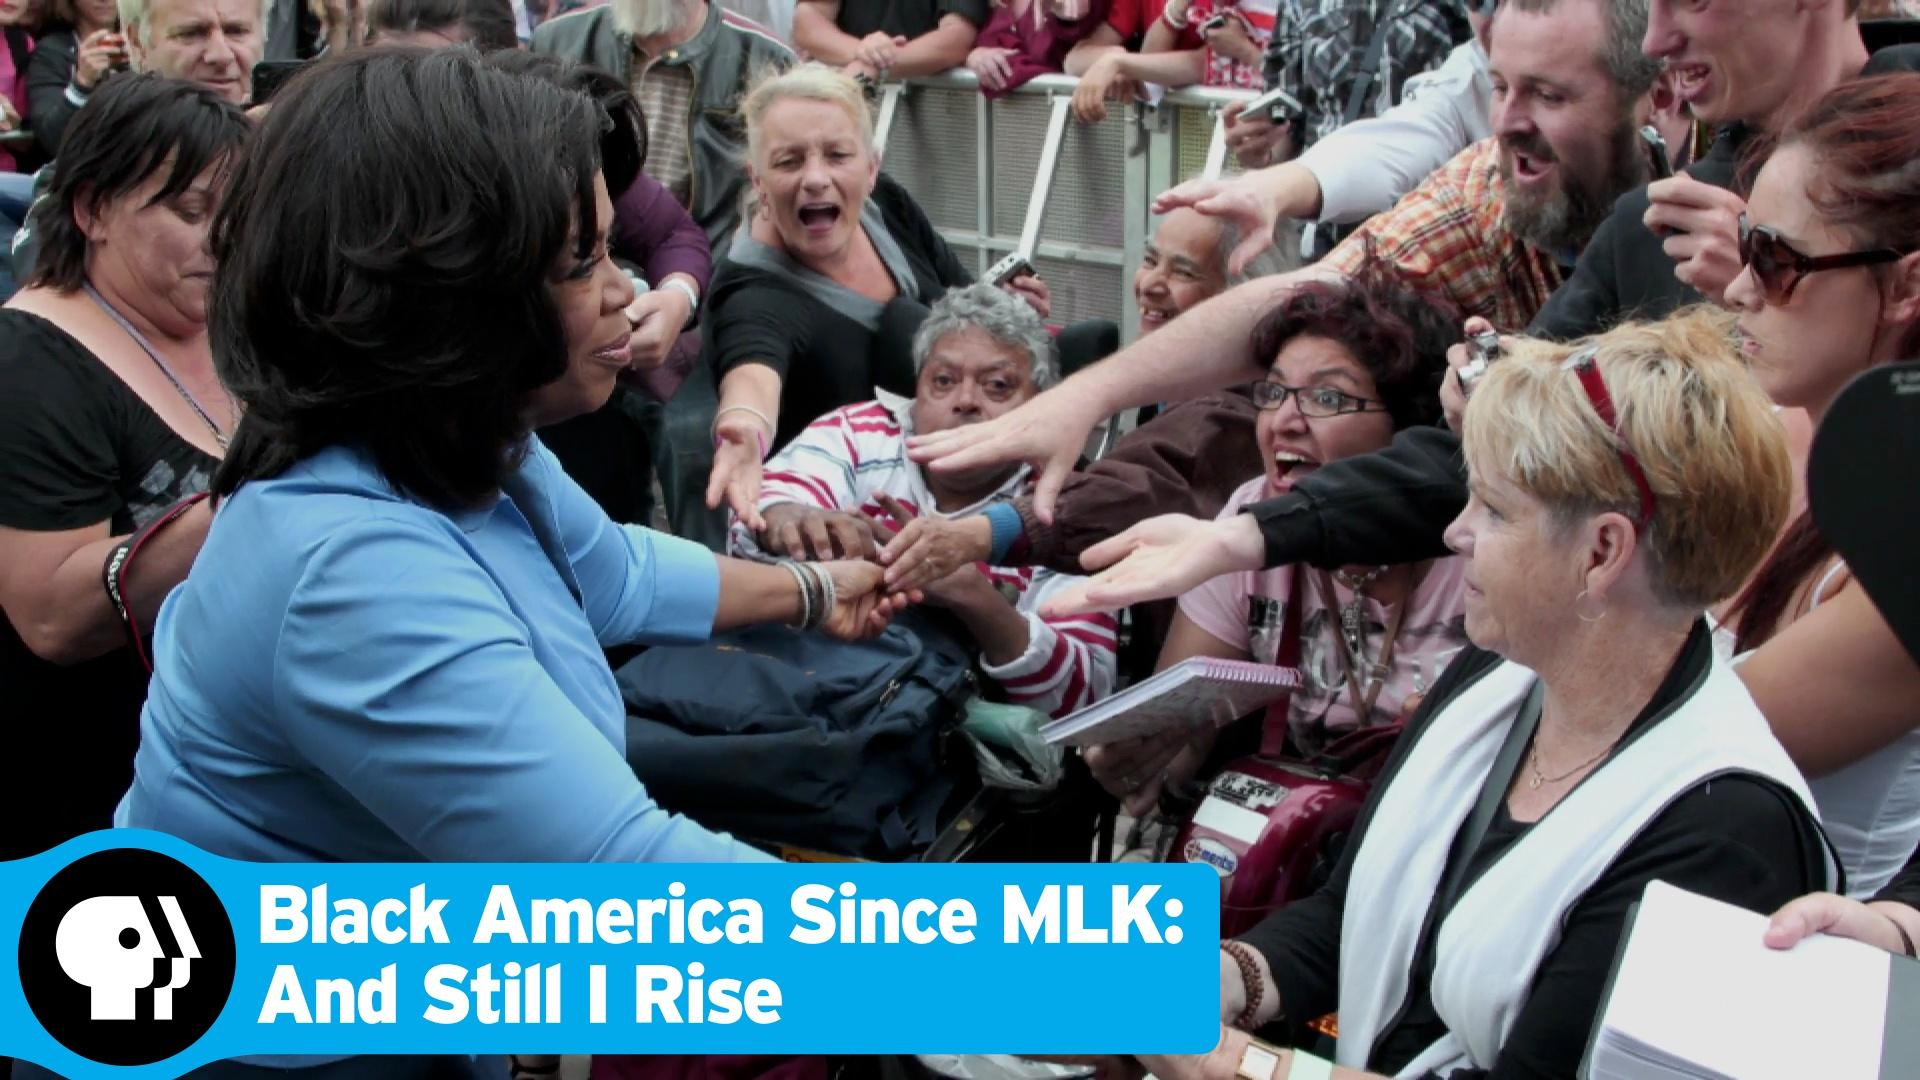 watch full episodes online of black america since mlk  and